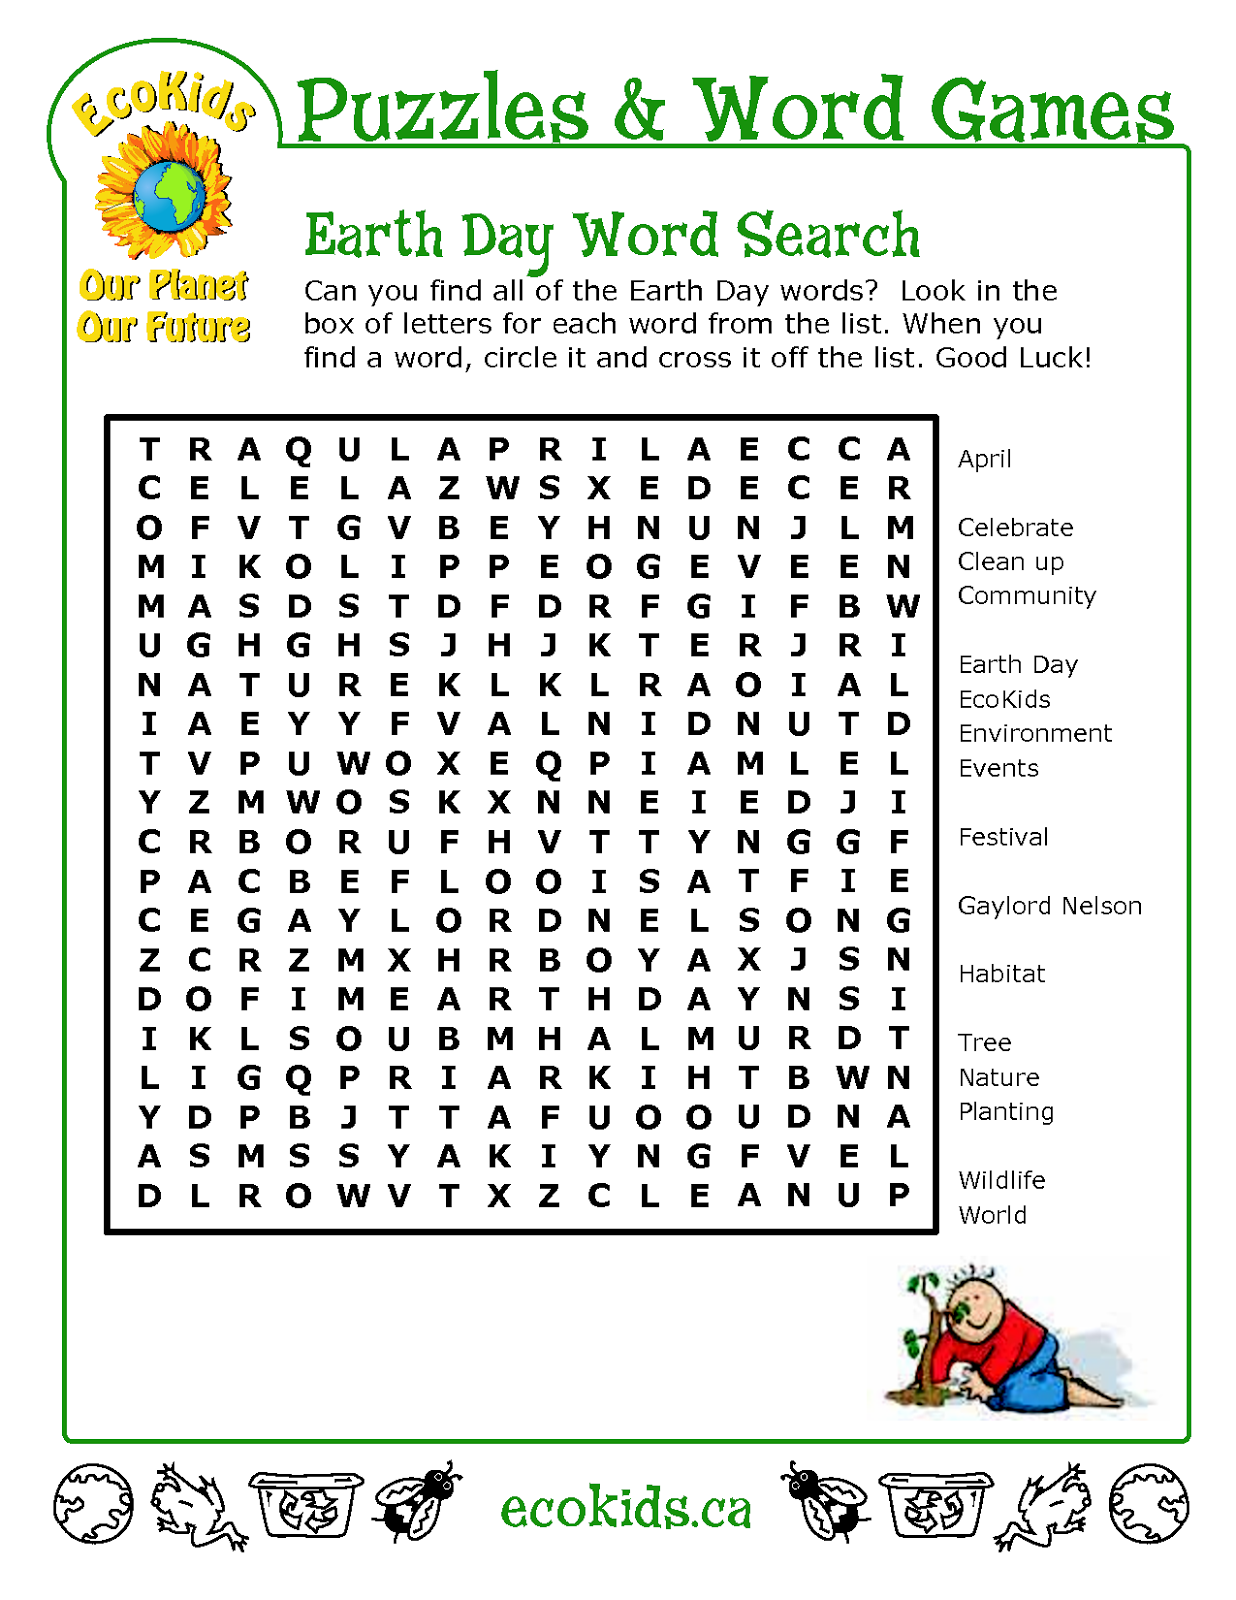 earth day crossword u0026 2015 04 earth day puzzle sc 1 st word witty